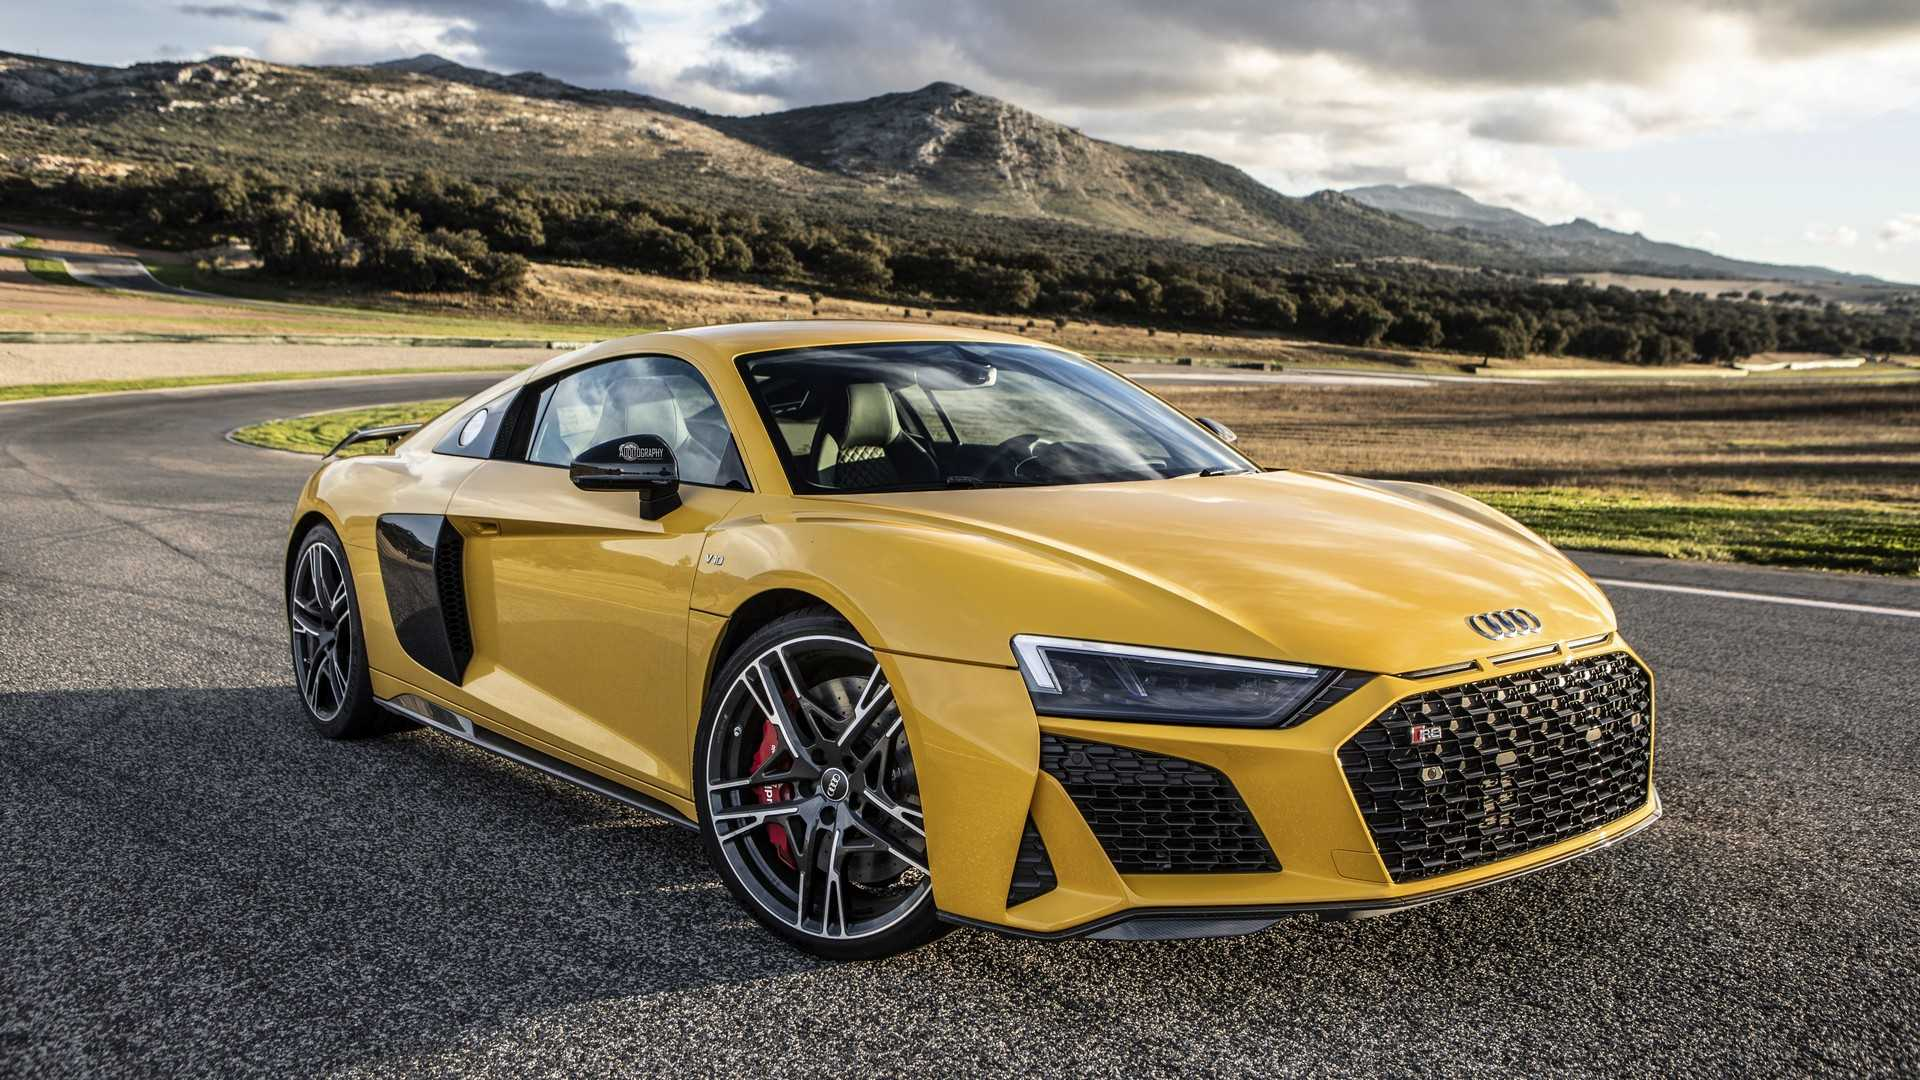 39 New 2019 Audi R8 Performance and New Engine with 2019 Audi R8